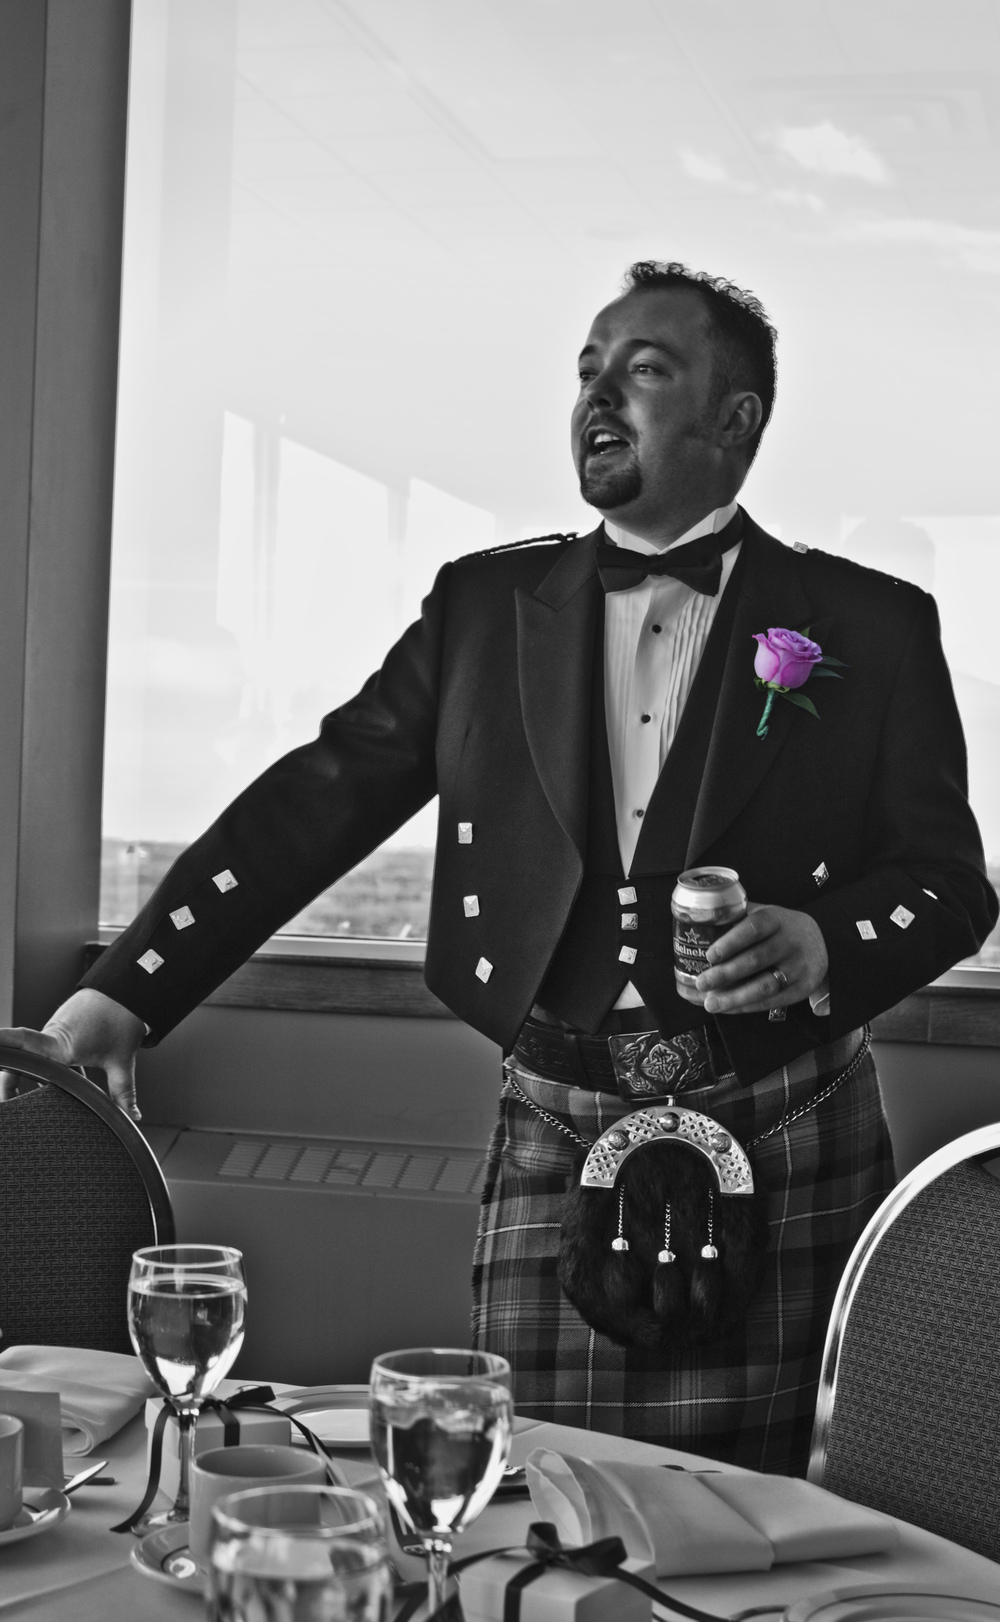 calgary-wedding-groom-with-a-pink-rose-corsage-and-plaid-kilt.jpg